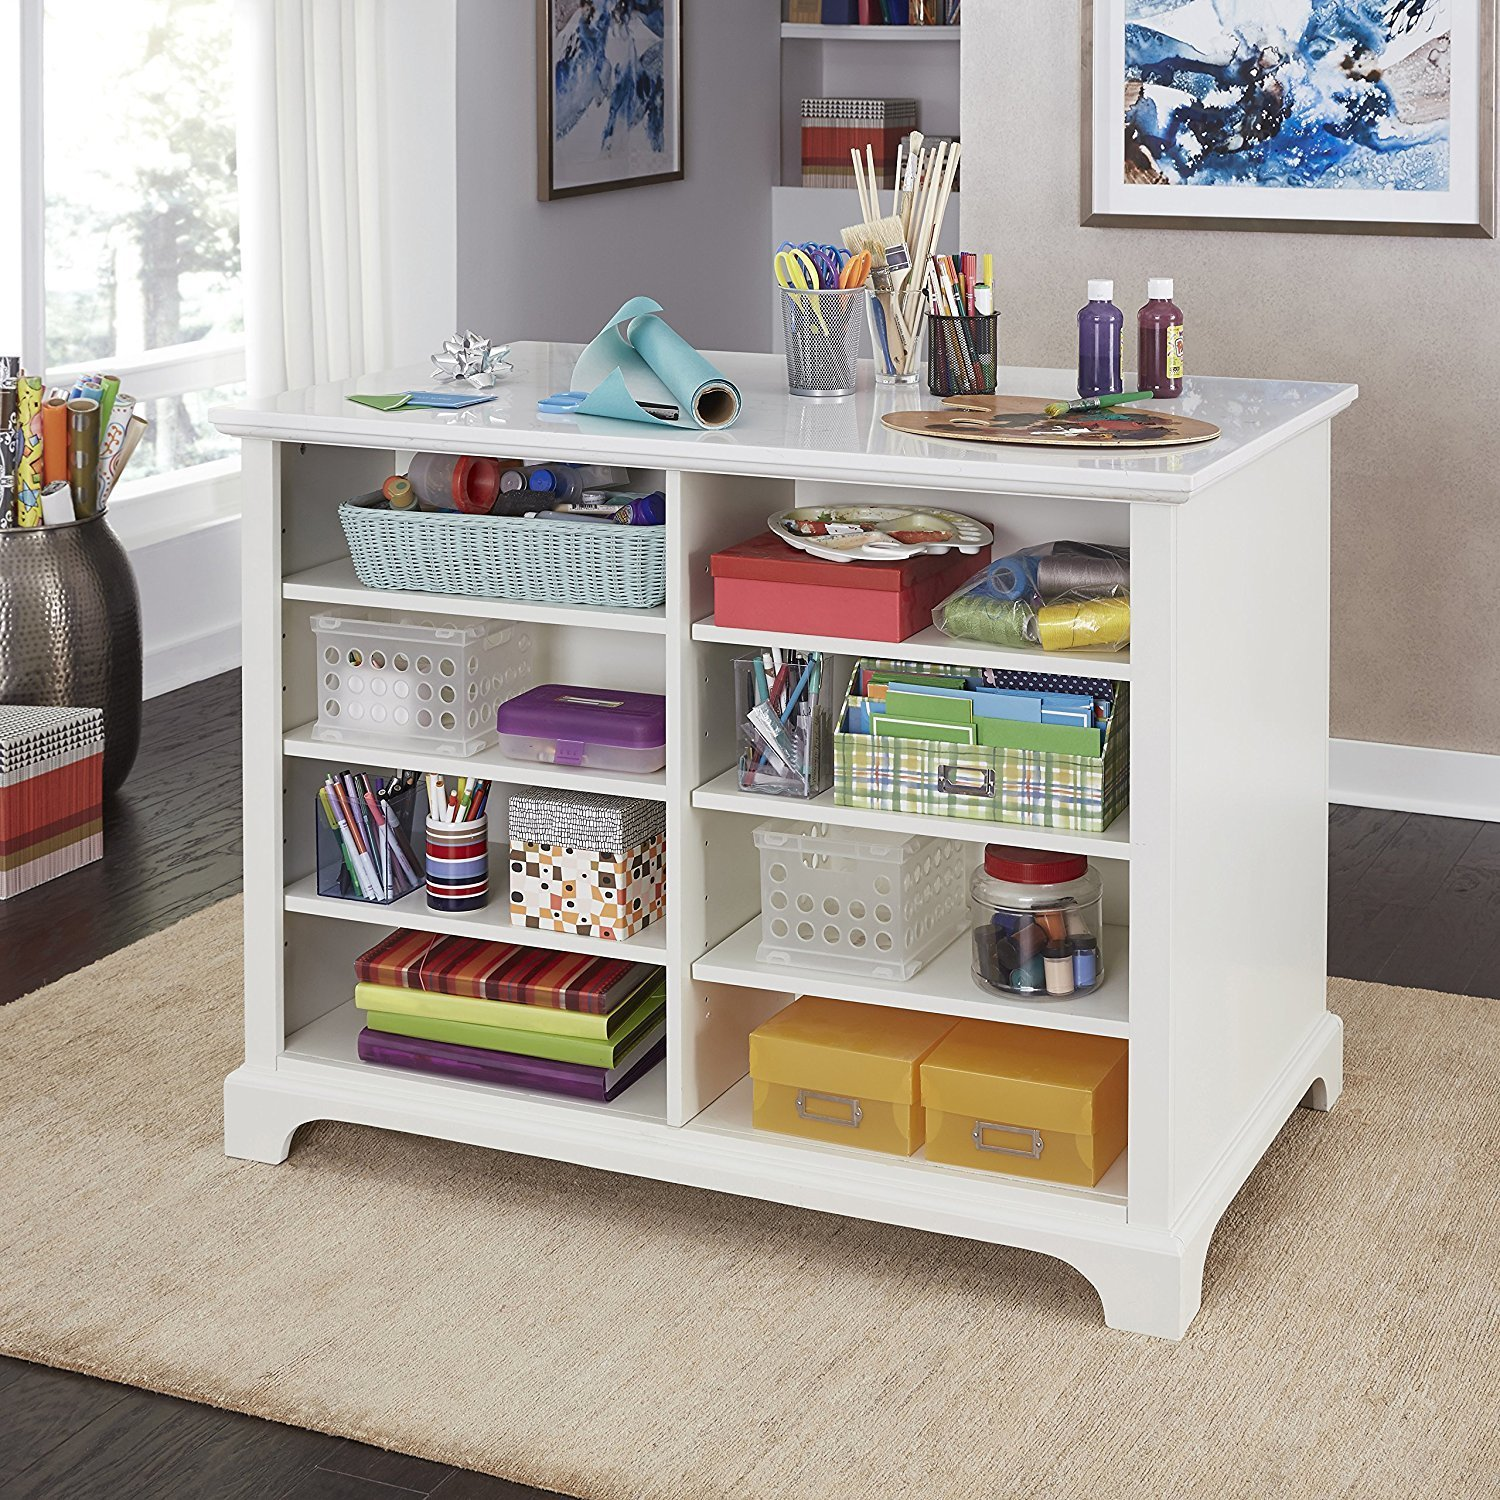 white together drawers of size well tower storage full with wood as closet doors organizer also